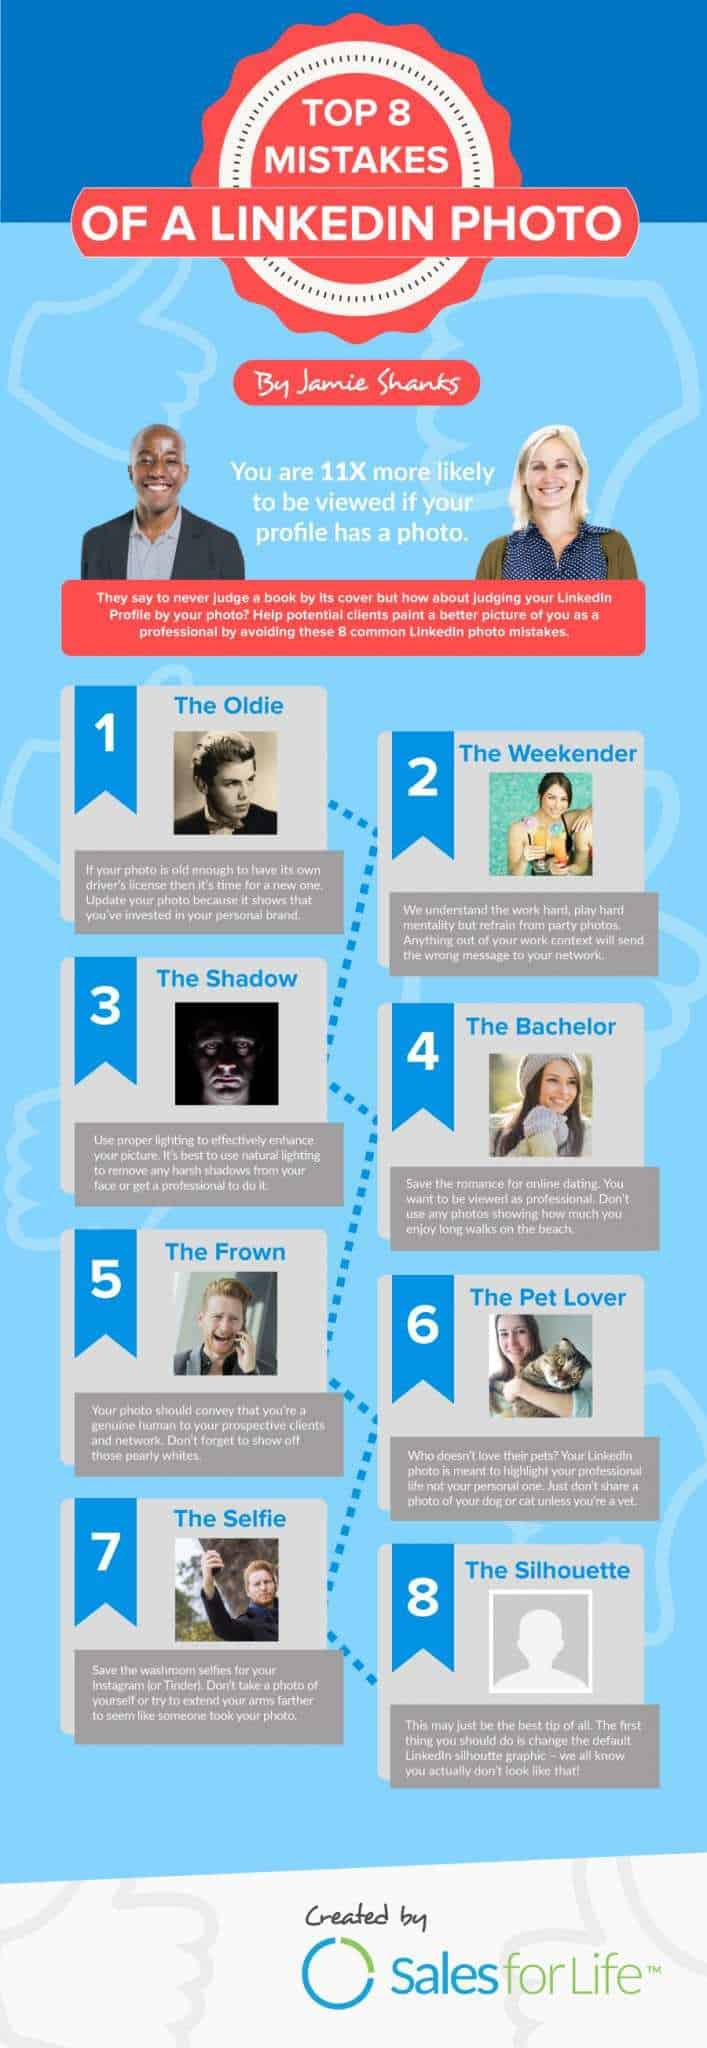 For more tips and advice on profile photos on LinkedIn, check out this infographic.